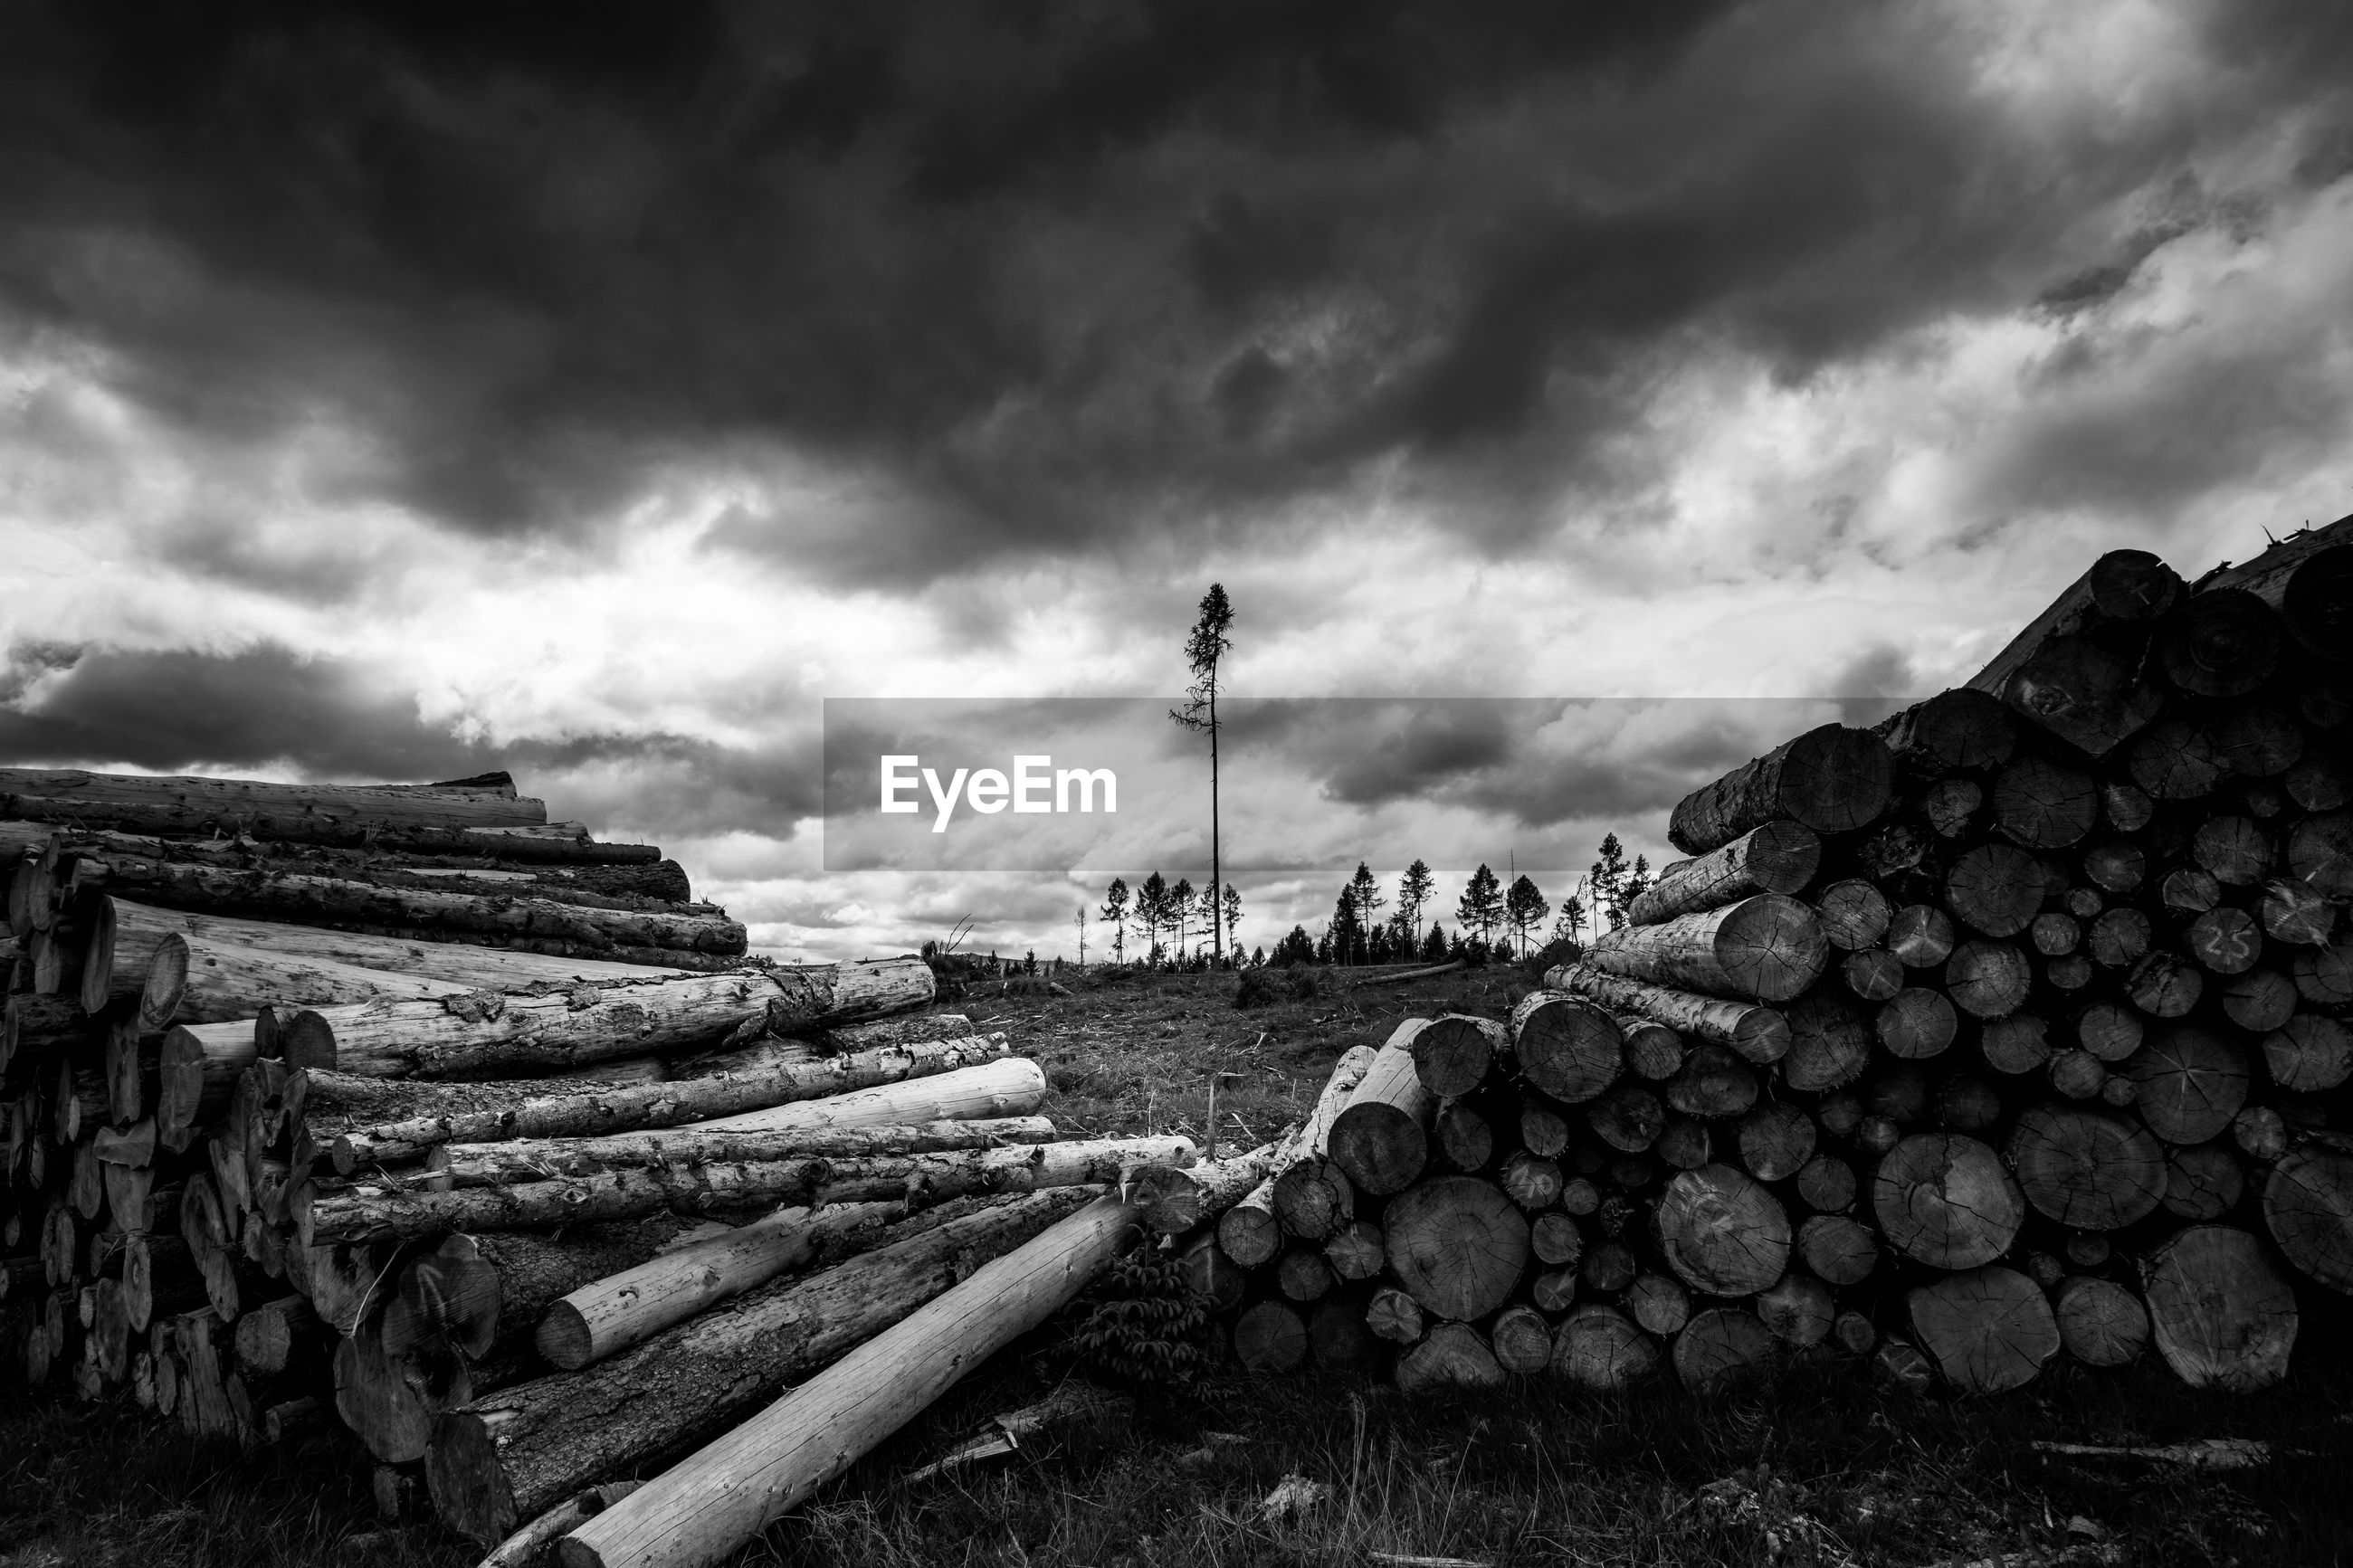 STACK OF LOGS ON FIELD AGAINST CLOUDY SKY